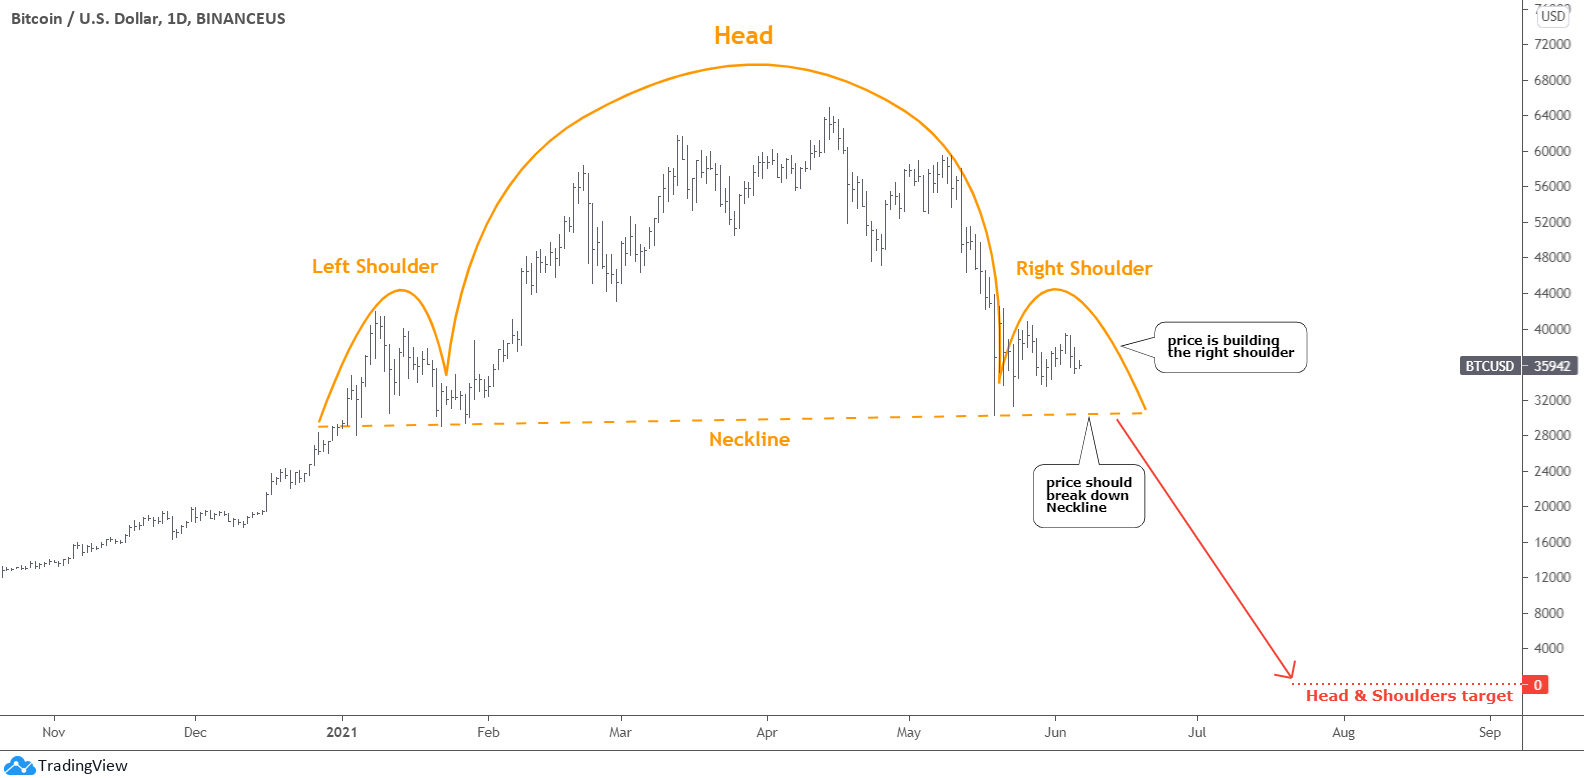 Bitcoin Head and Shoulders Pattern